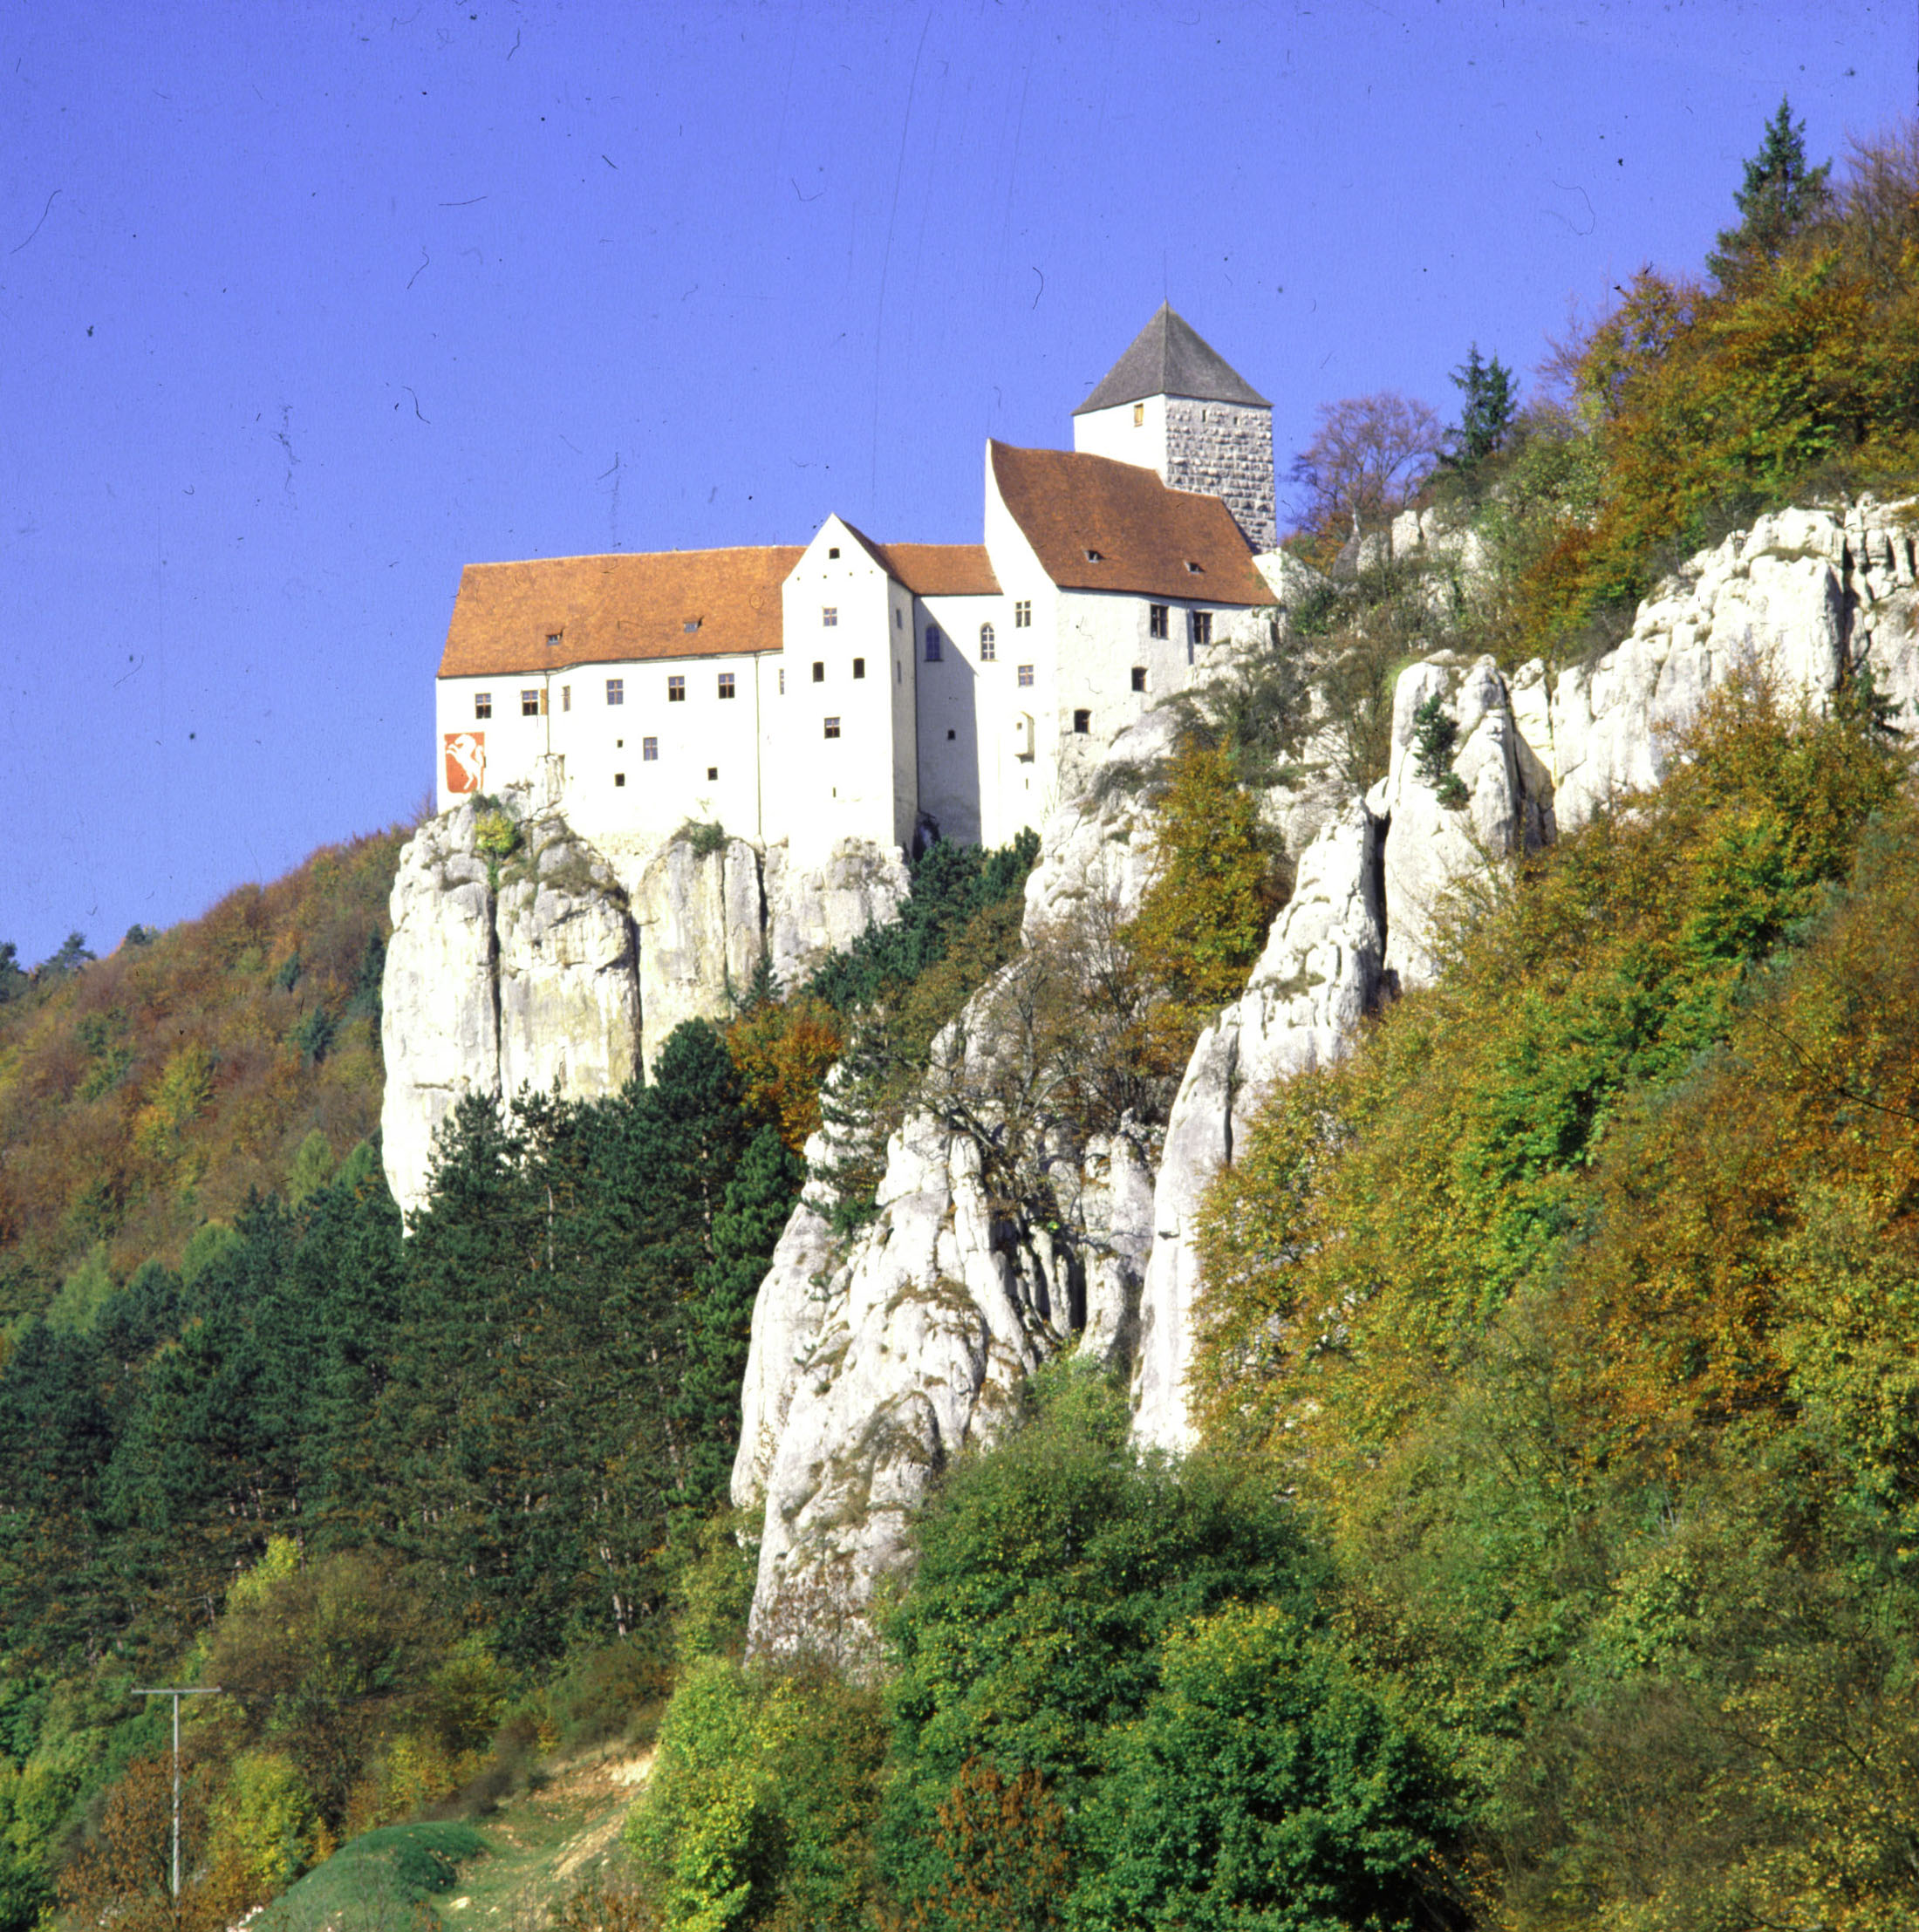 Prunn Castle is perched on an almost vertical Jurassic outcrop.